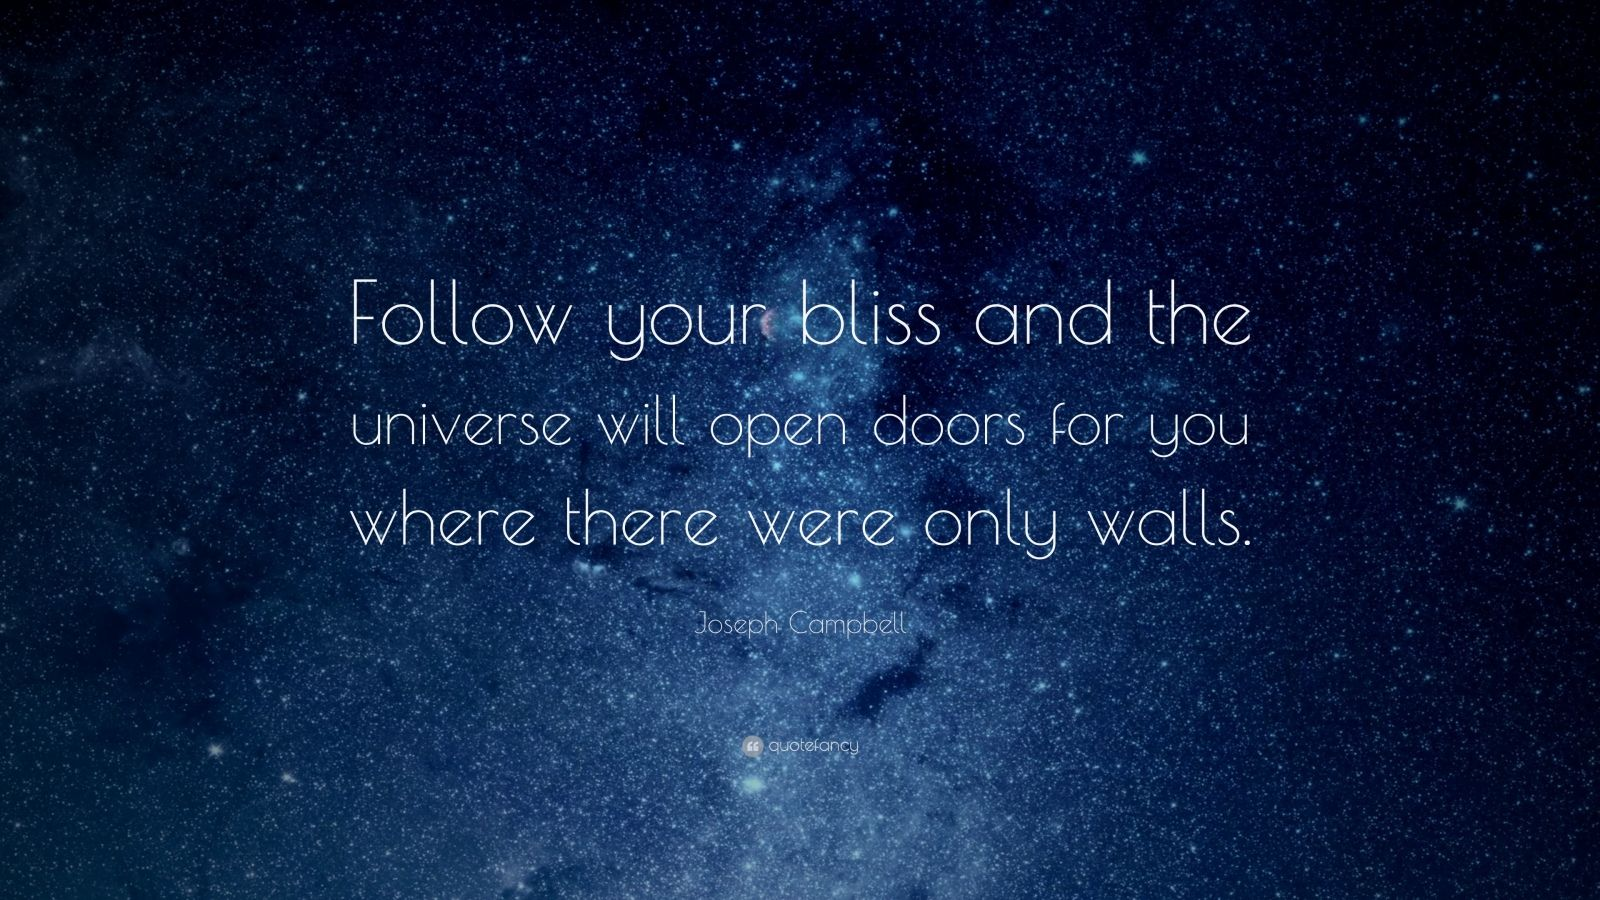 """Joseph Campbell Quote: """"Follow your bliss and the universe will open doors for you where there were only walls."""""""